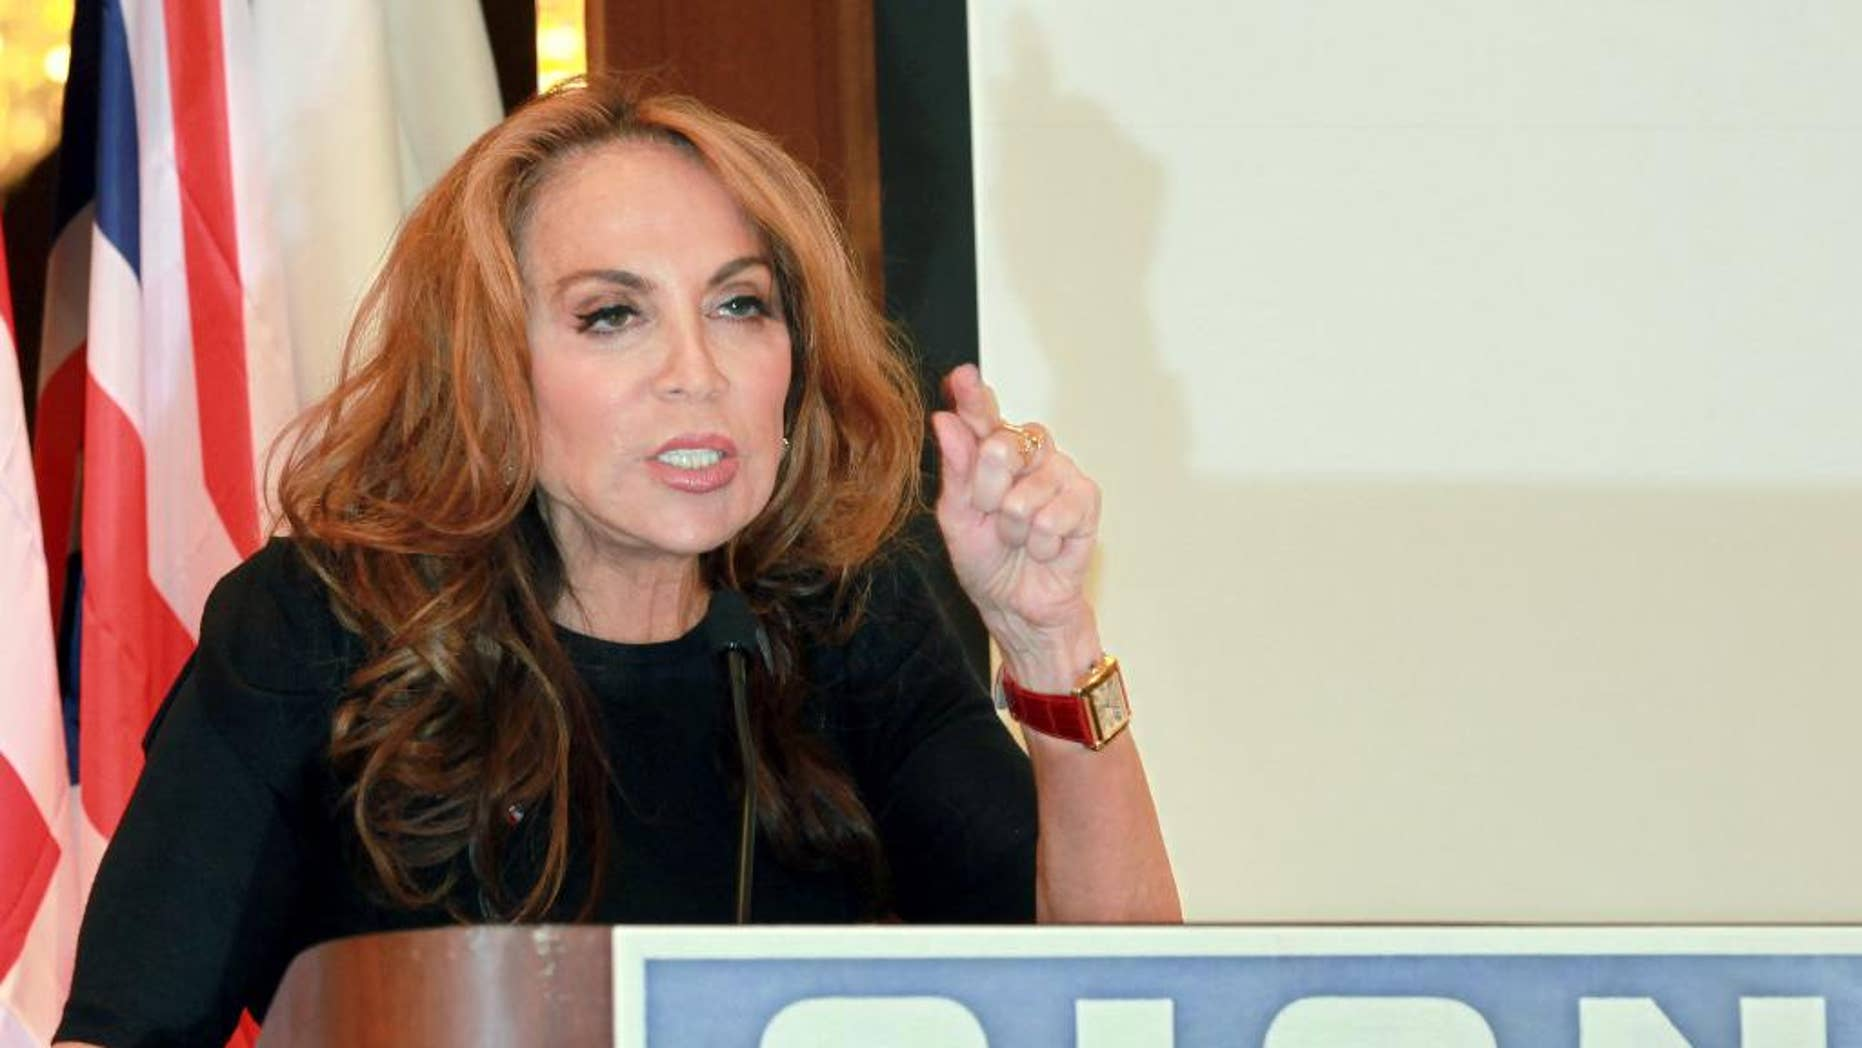 """In this Sept. 11, 2012 photo, blogger and activist Pamela Geller speaks at a conference she organized entitled """"Stop Islamization of America,"""" in New York. The New York Police Department met with Geller on Wednesday, May 6, 2015, after a threat against her was discovered on a website related to the Islamic State group. NYPD spokesman Stephen Davis said that the department will do a """"comprehensive threat assessment"""" to decide whether it's credible enough to require security for Geller. (AP Photo/David Karp)"""